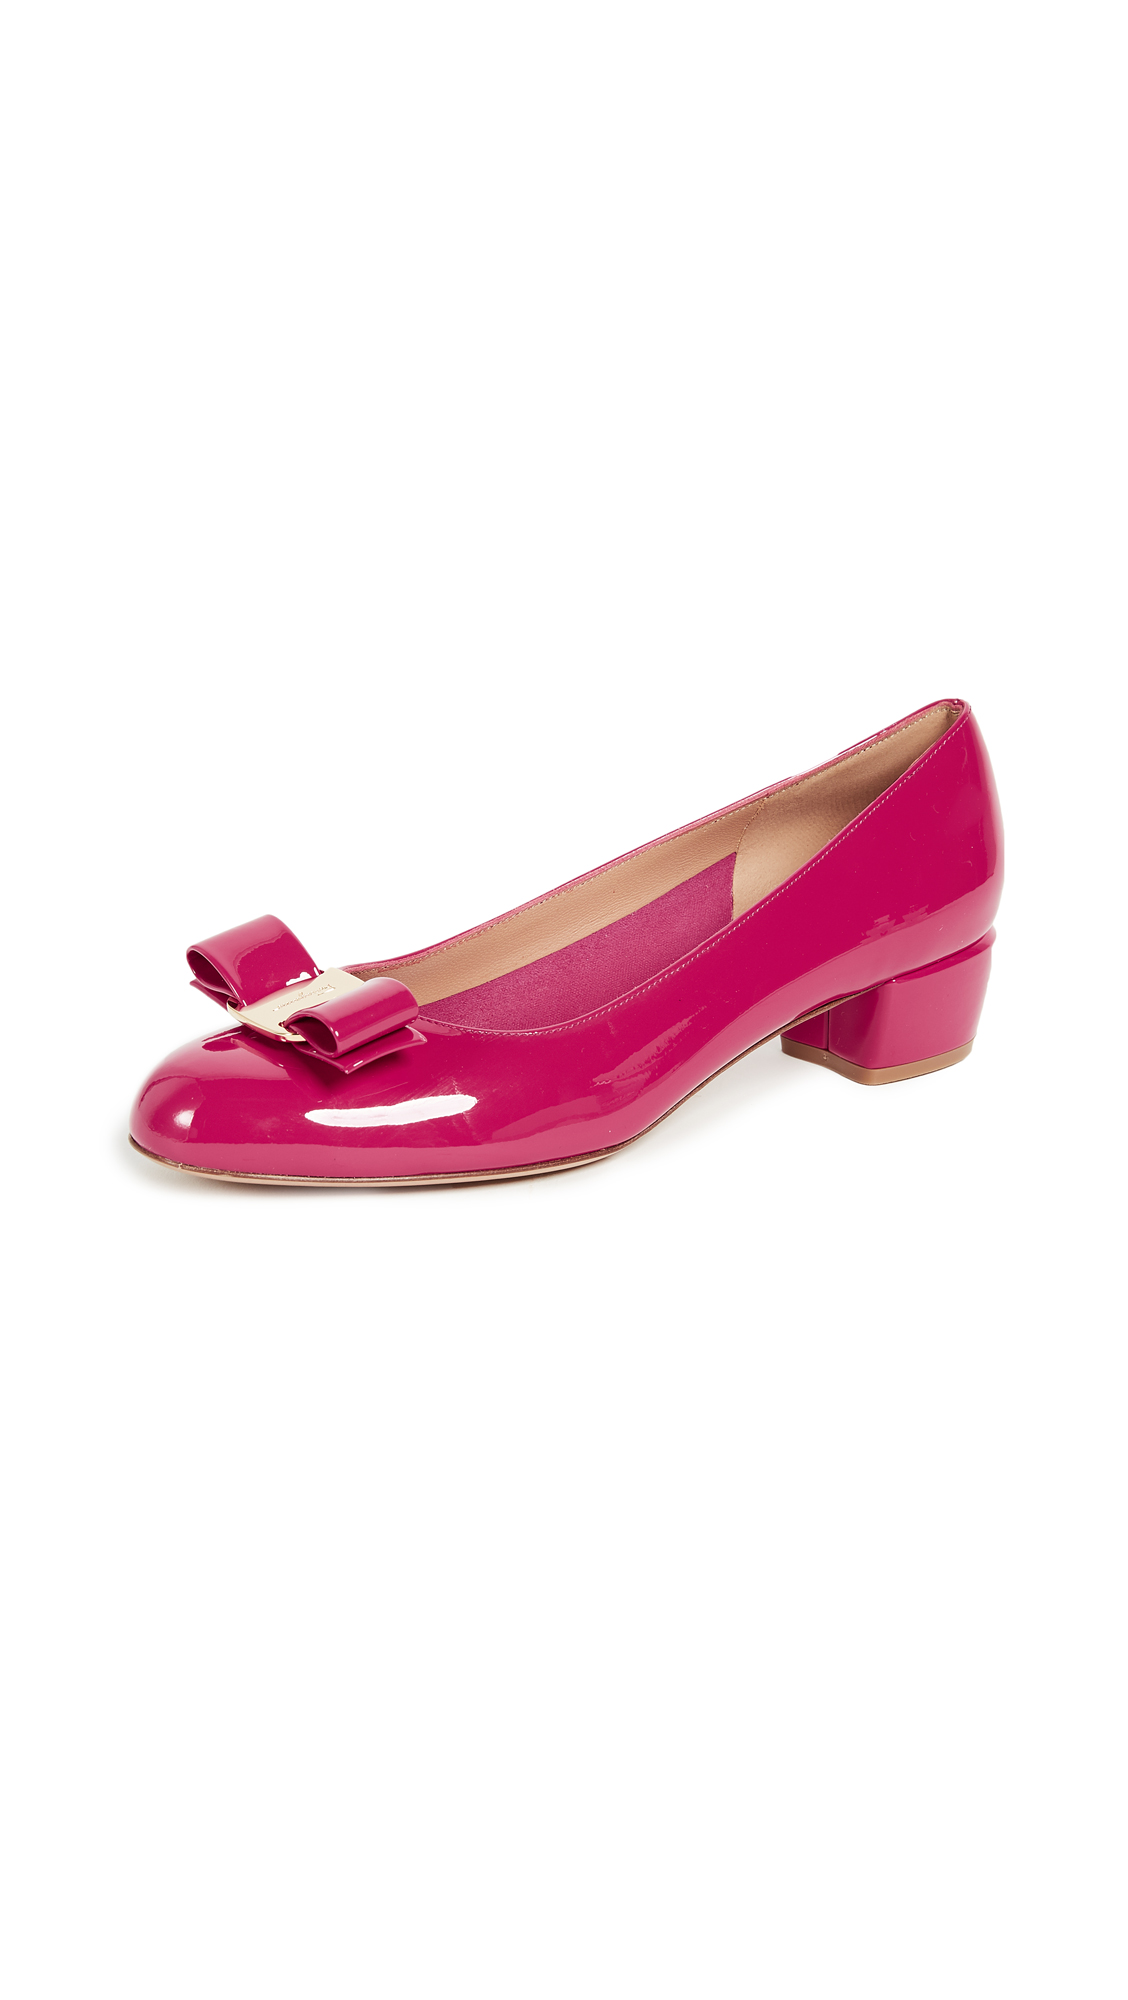 Salvatore Ferragamo Vara Low Heel Pumps - Begonia